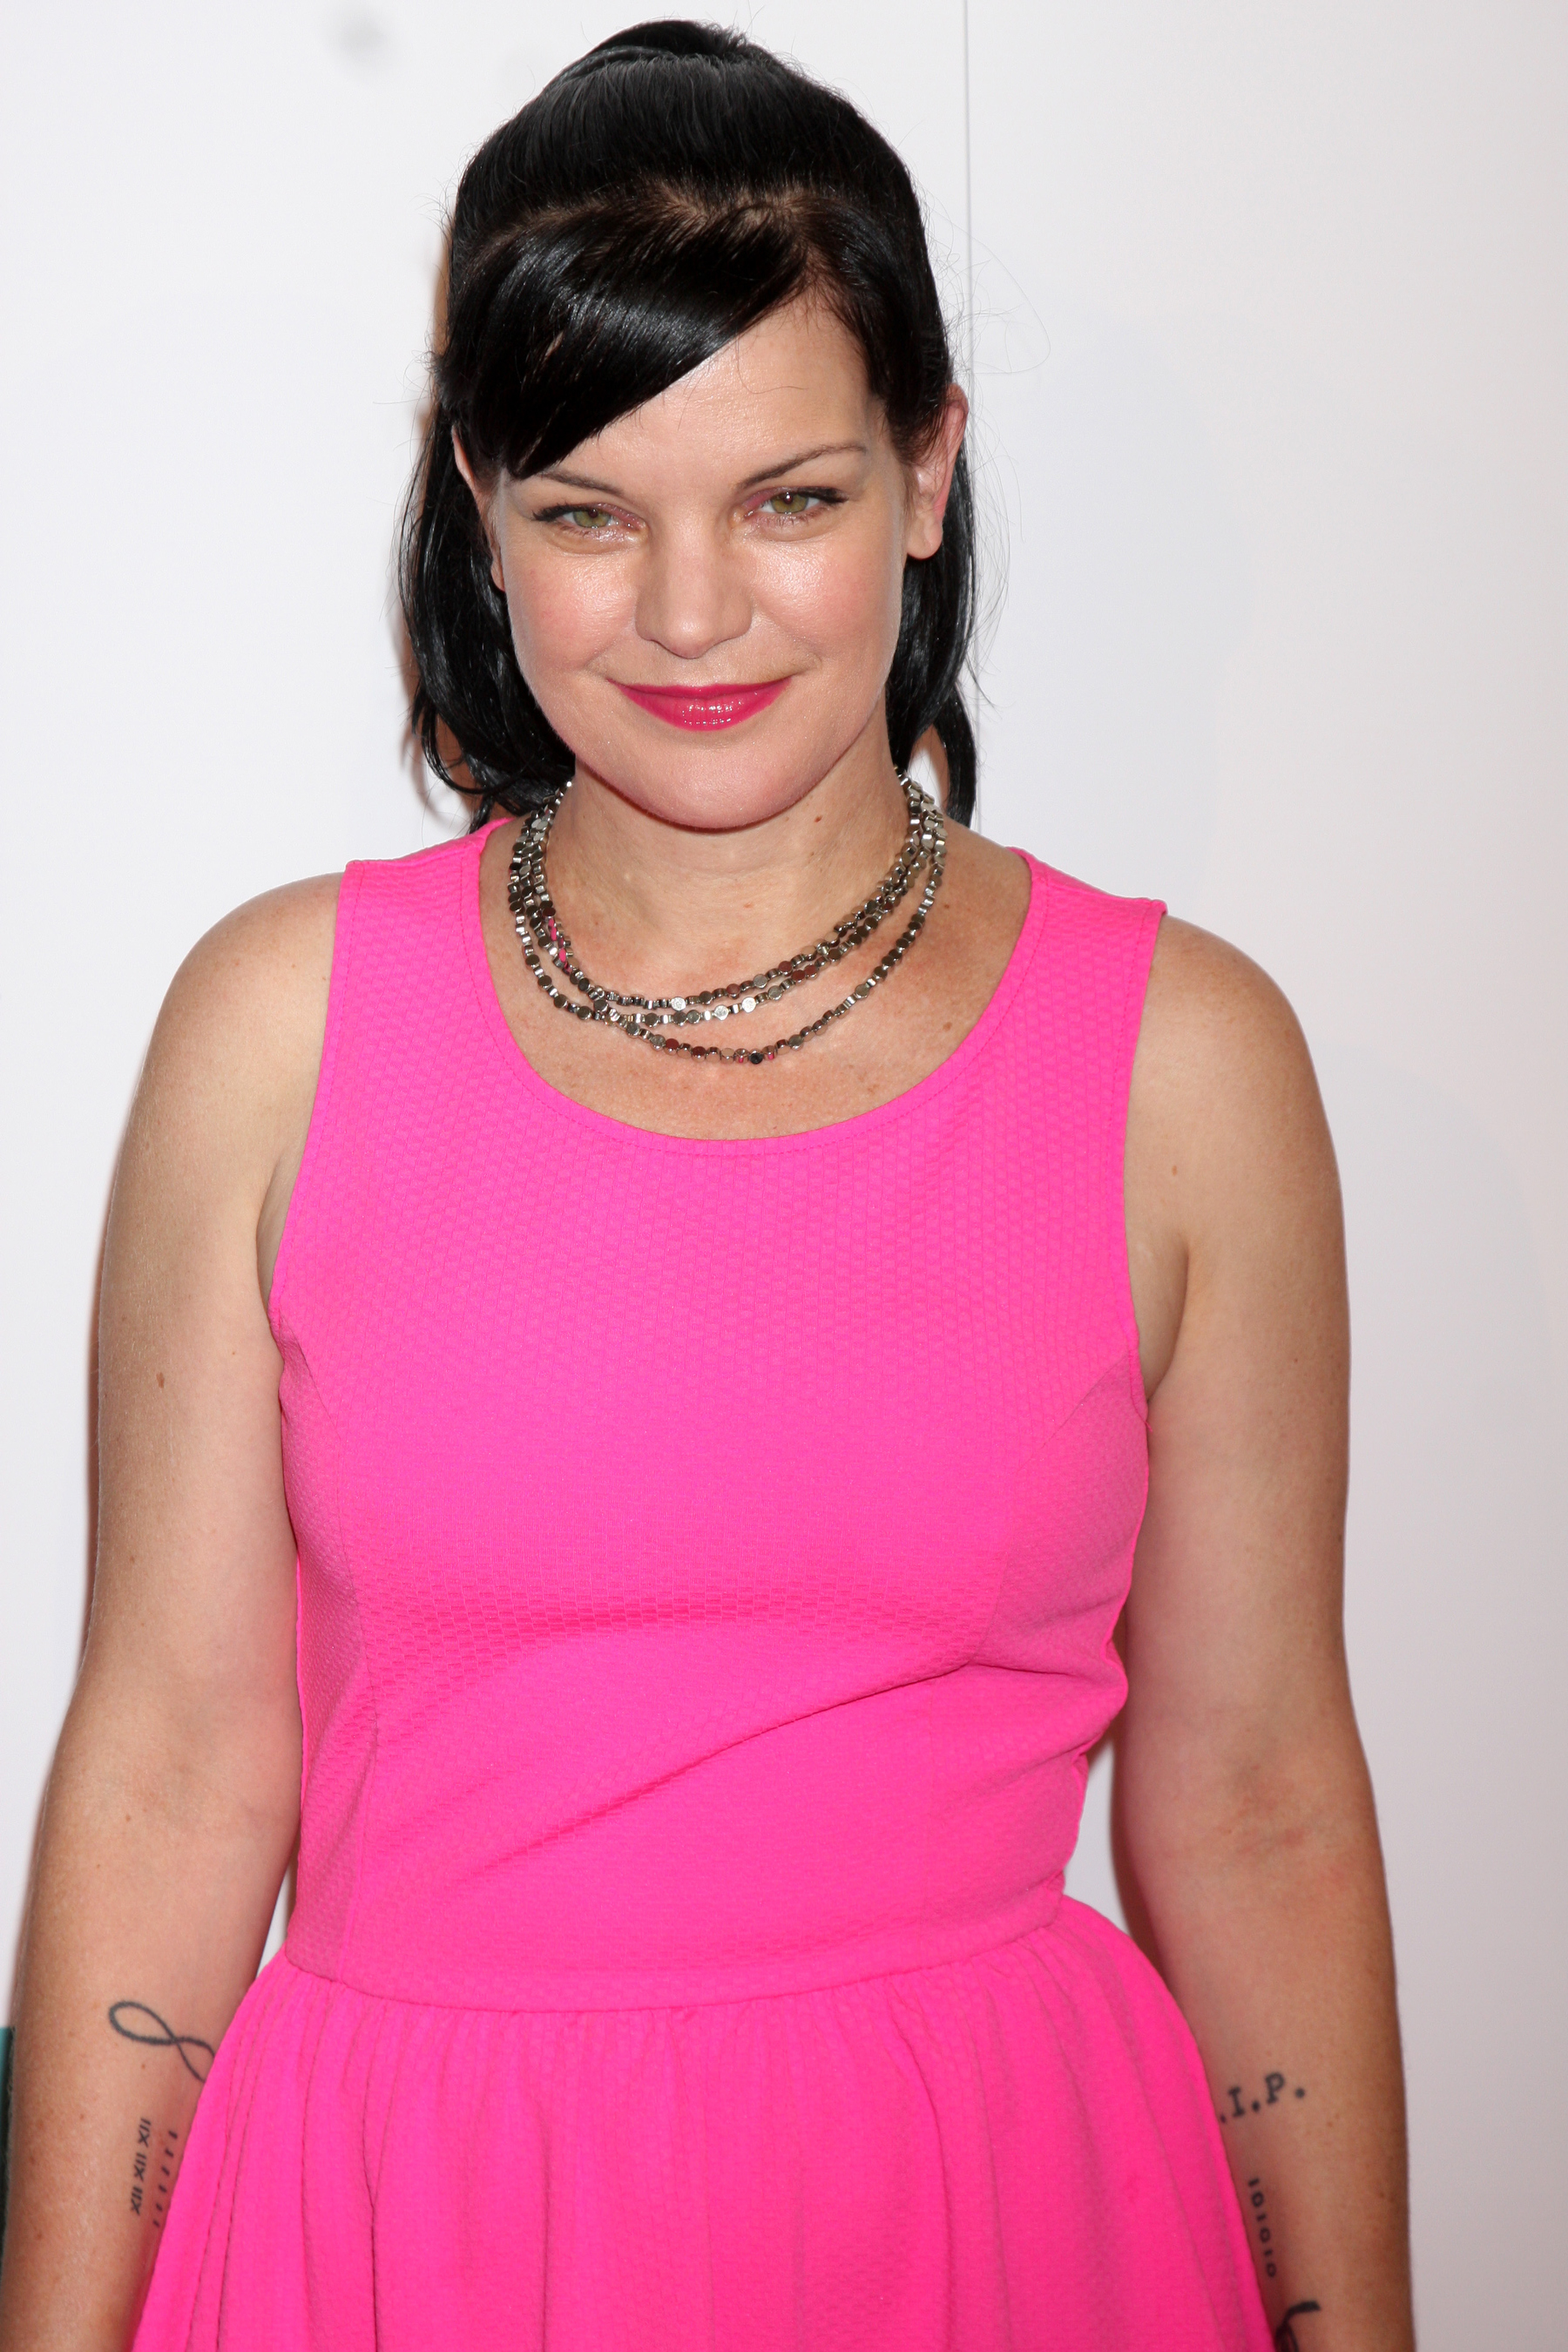 Pauley Perrette is a fighter